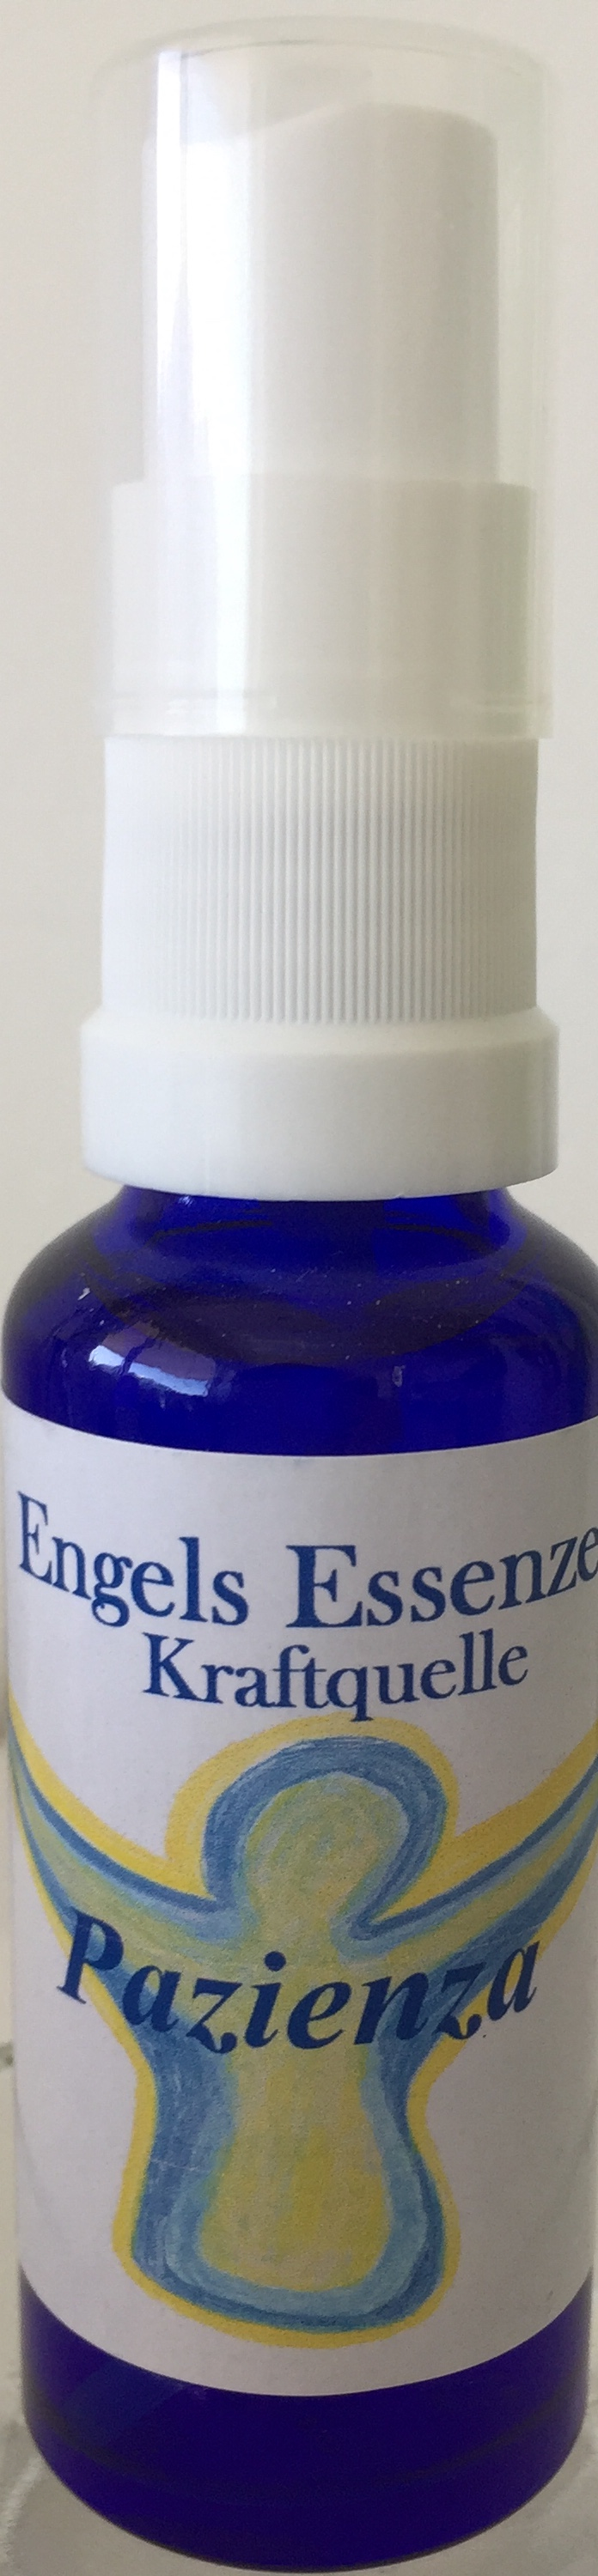 Essenza Angelo della pazienza 30 ml.